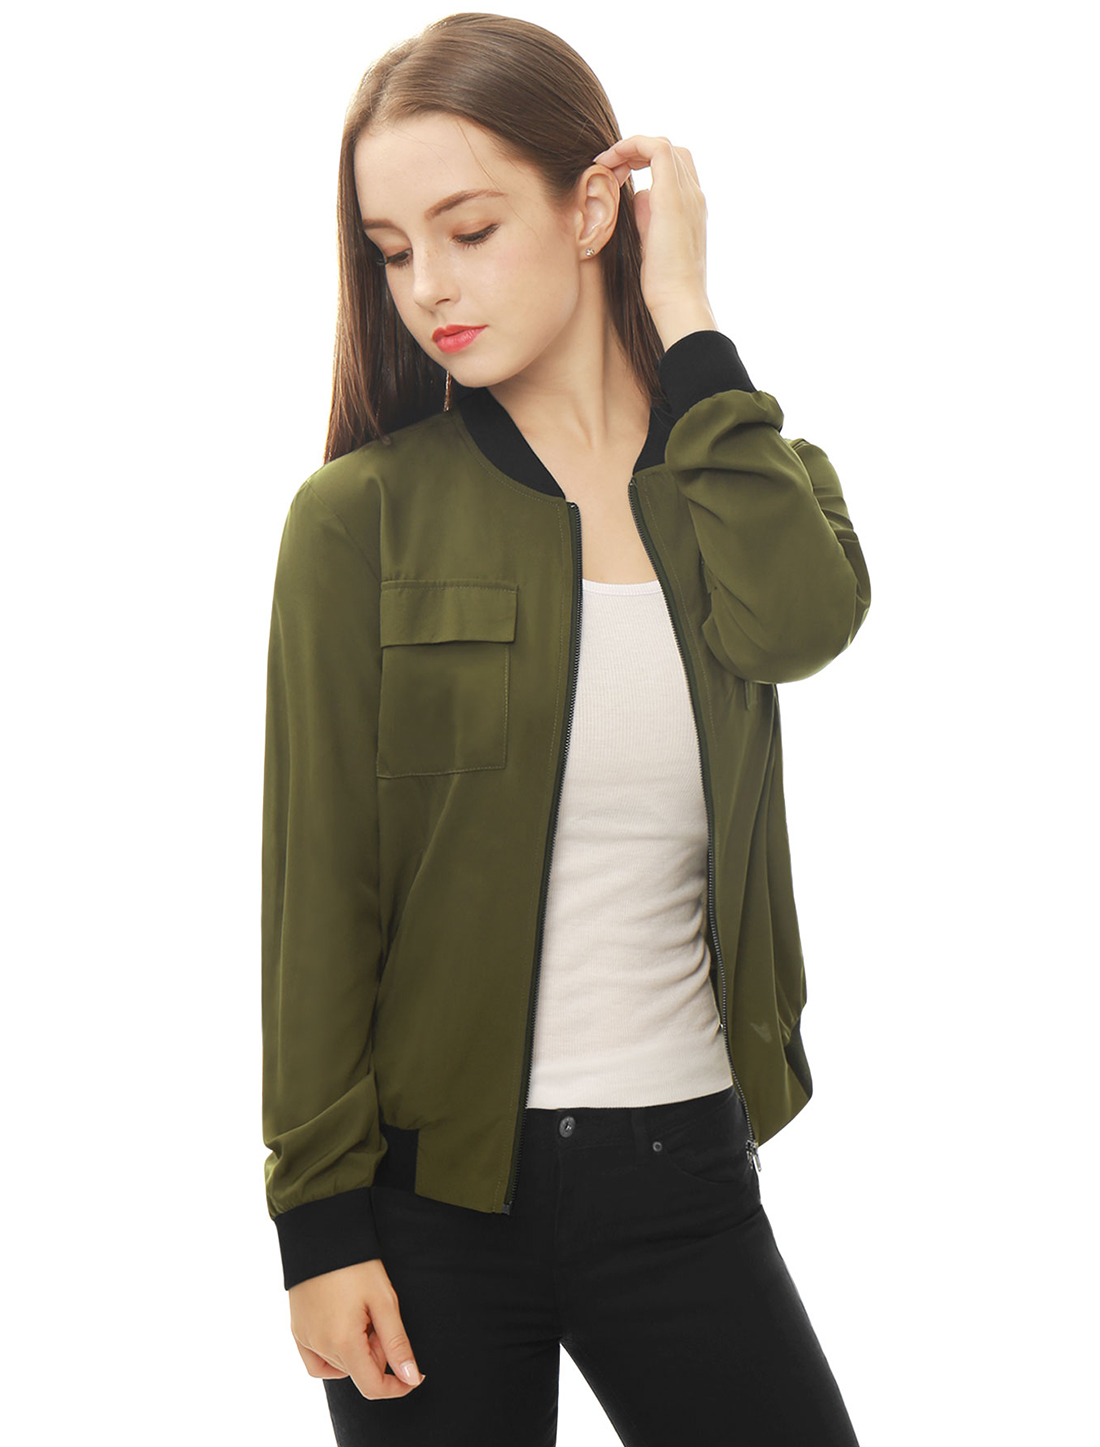 Women Multi-Pocket Zip Fastening Front Bomber Jacket Green XS